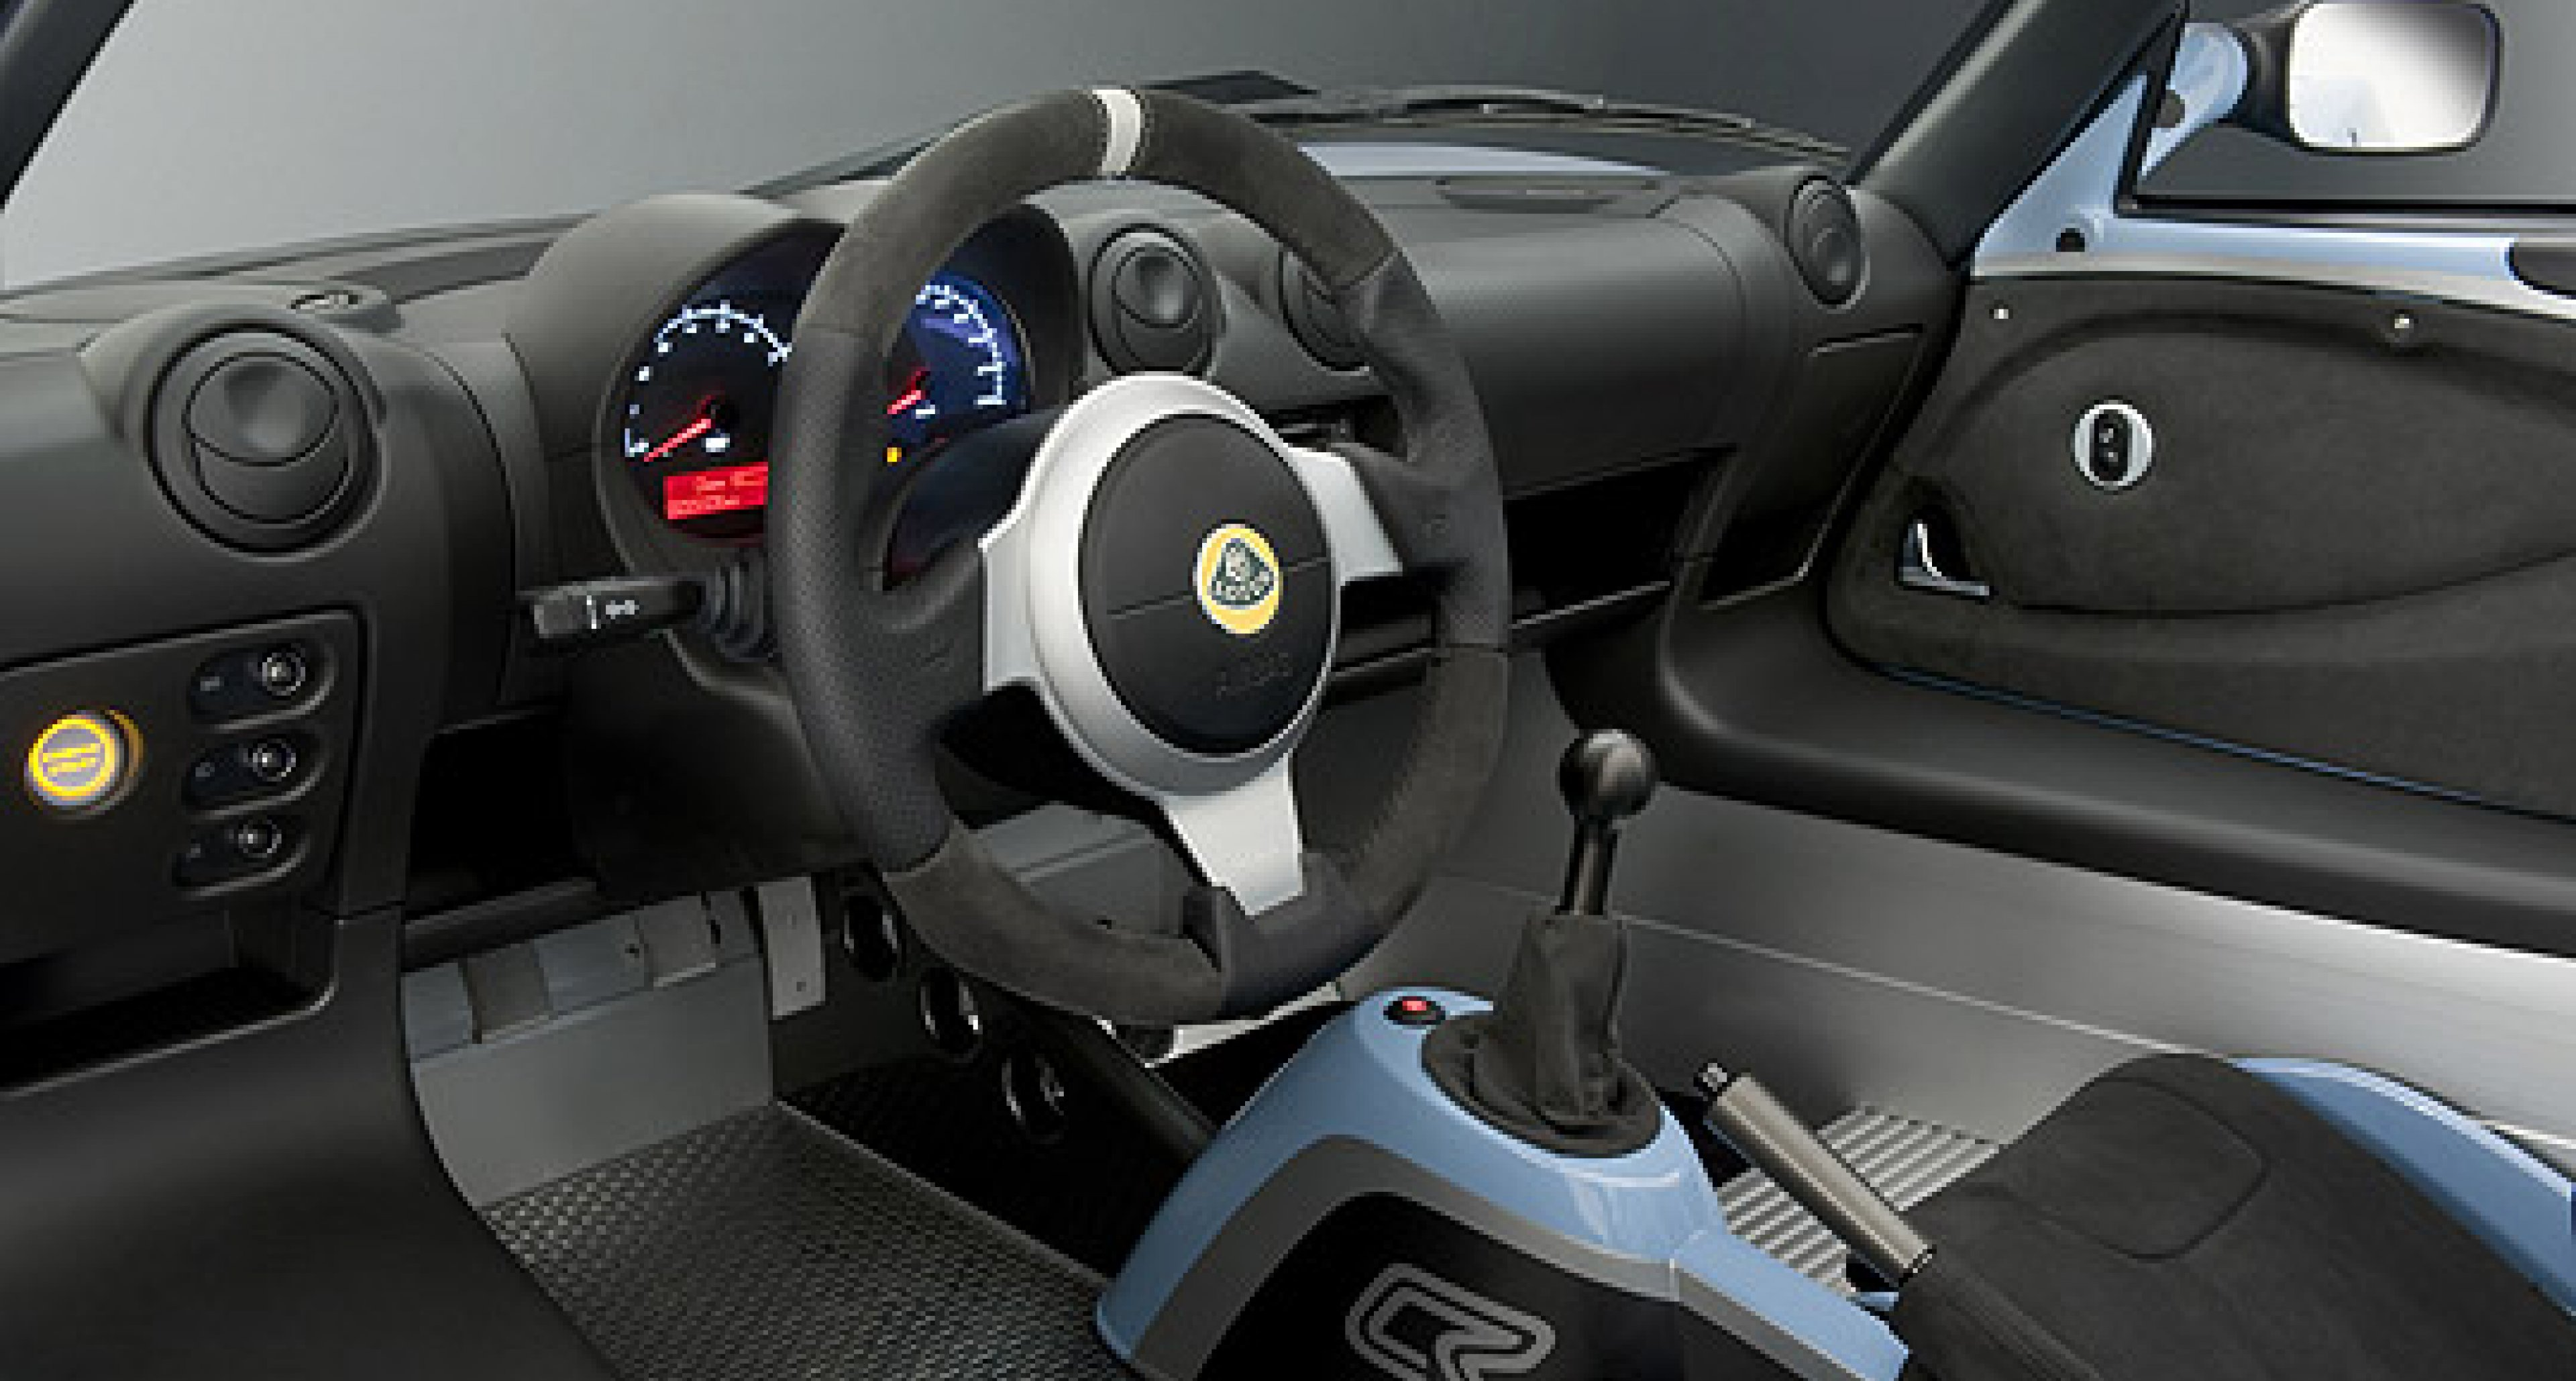 Lotus Elise Club Racer: Farbe trifft Funktion